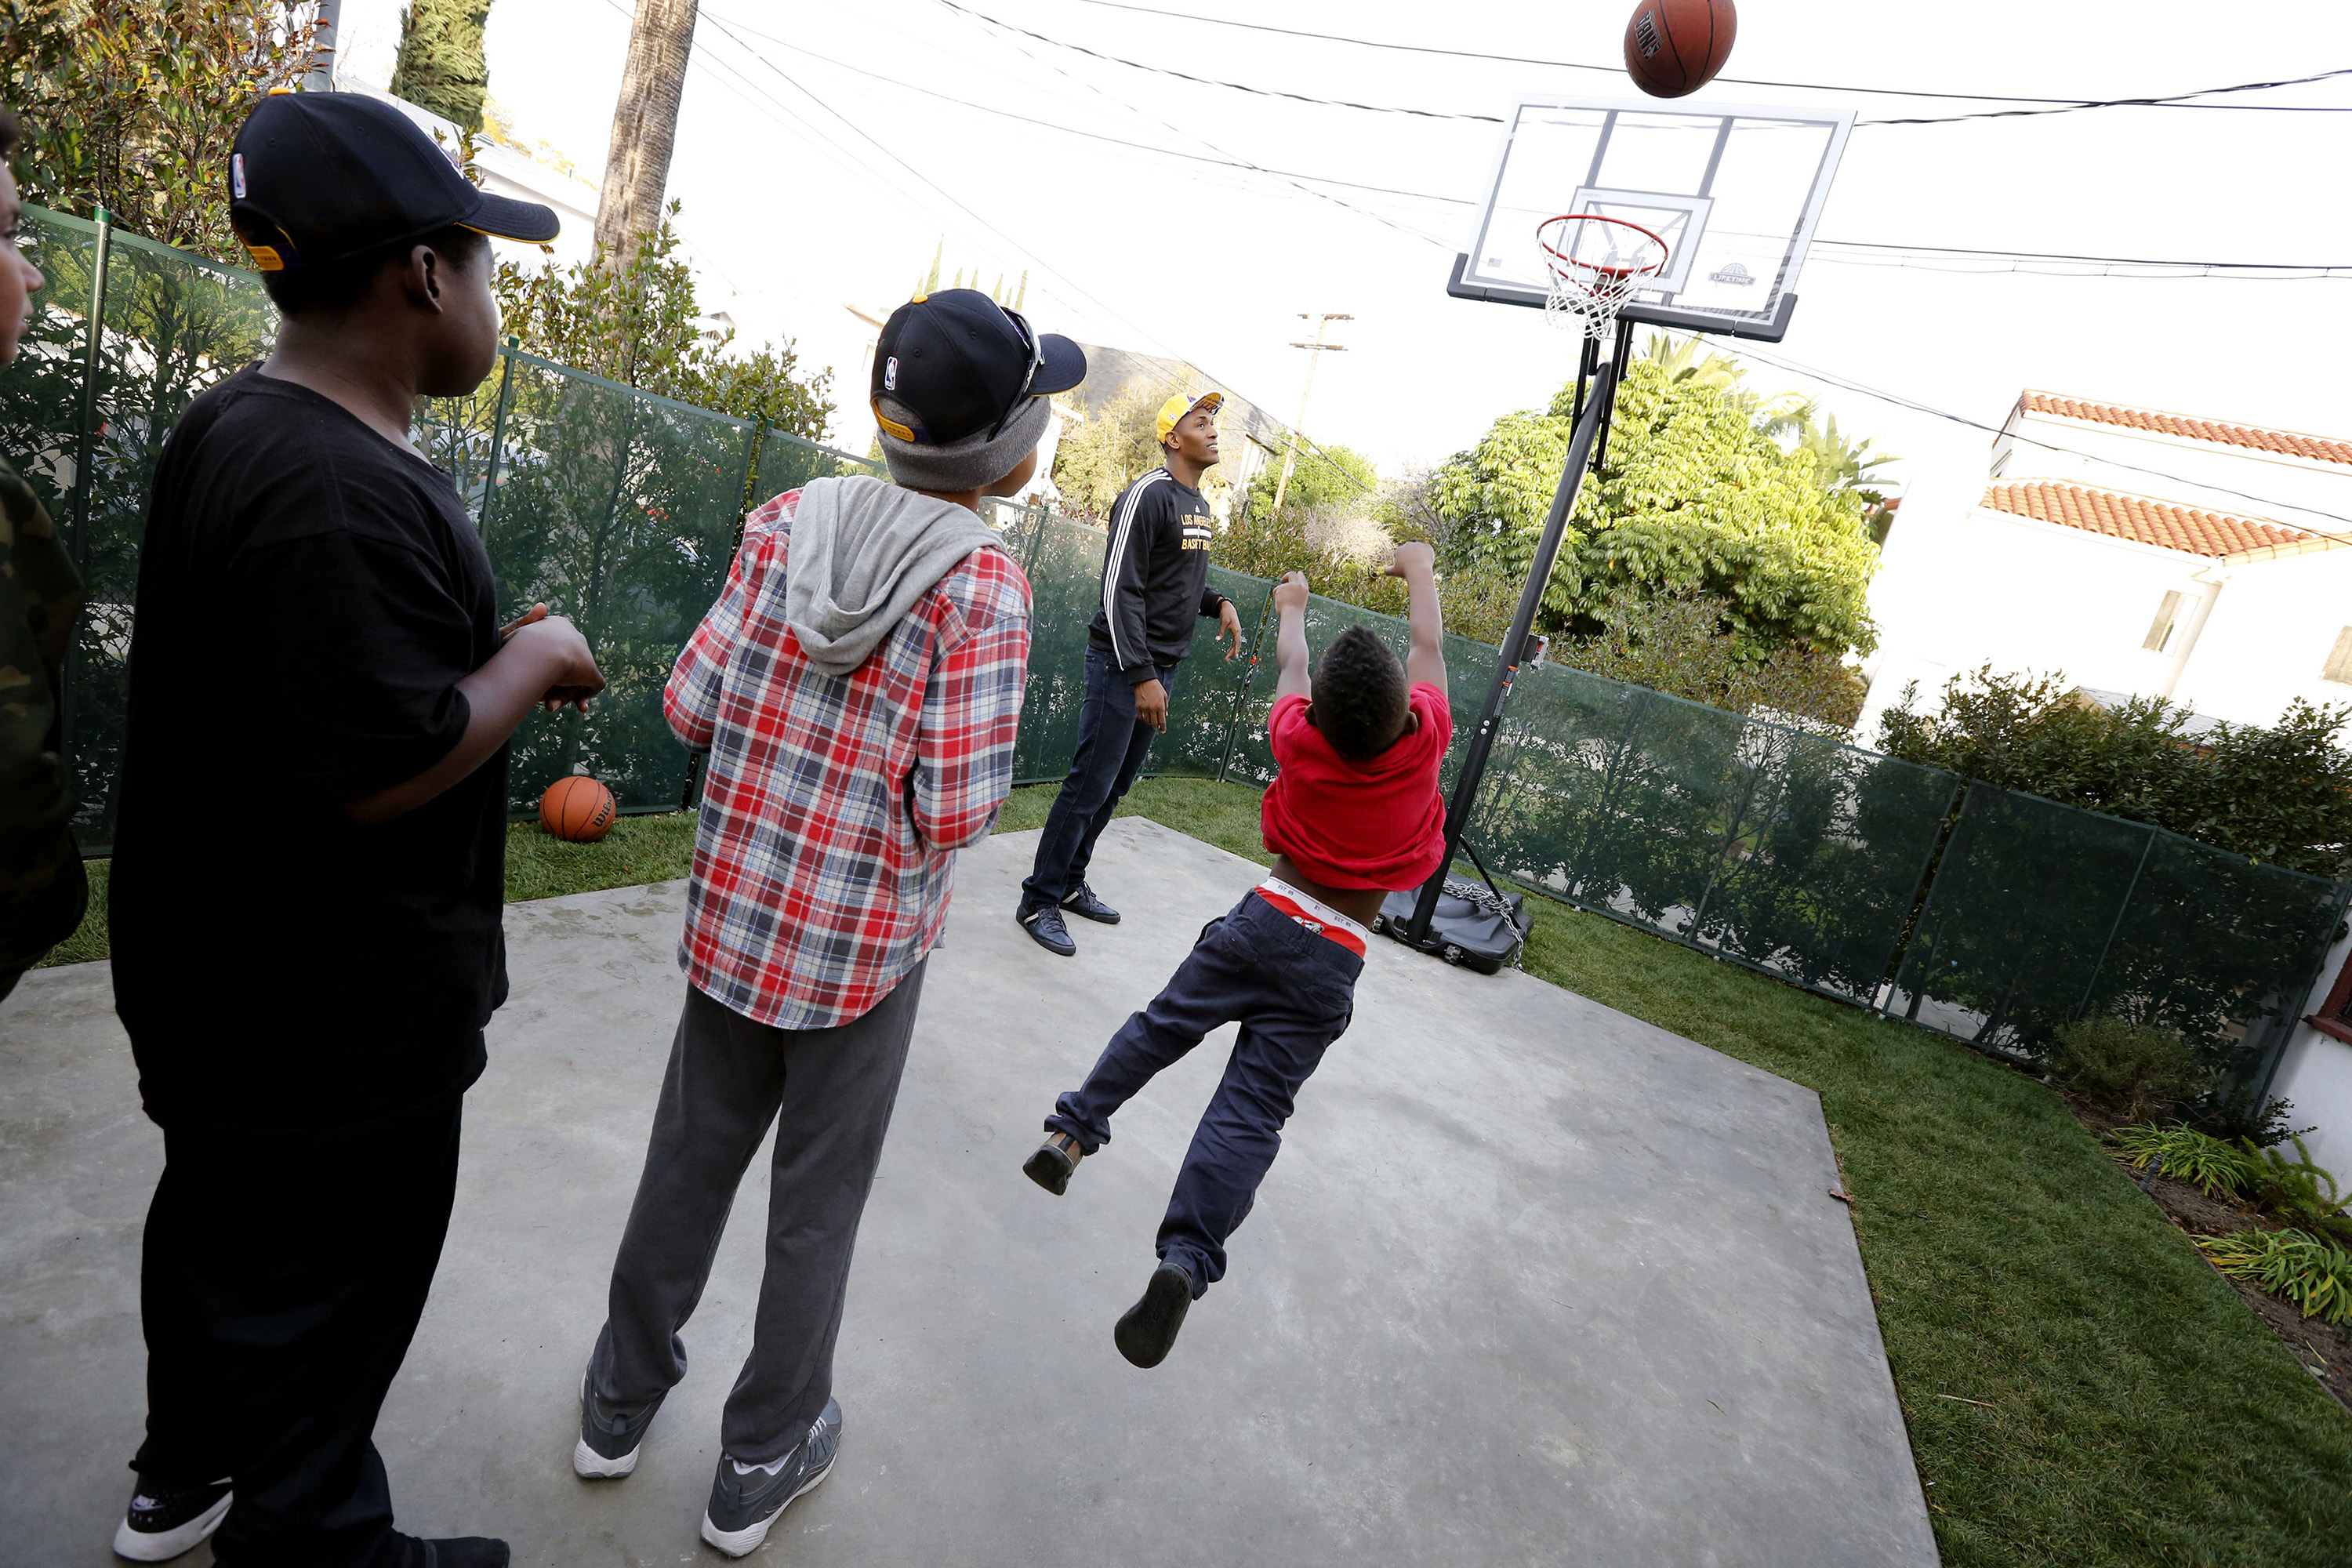 newsela forget cookies scout builds playground court